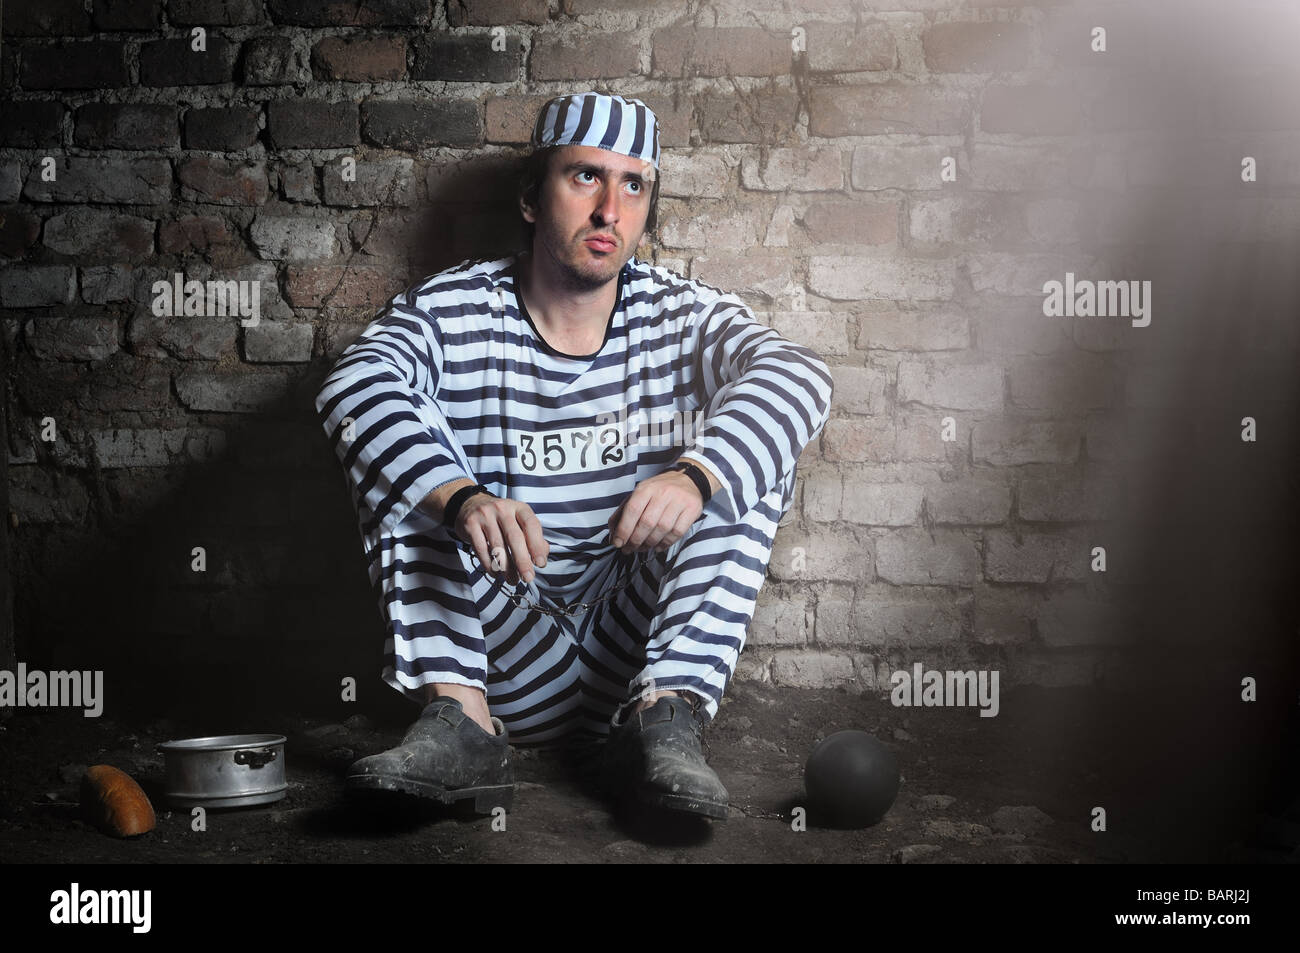 Prisoner in chains sitting on the floor of a prison cell ... Pictures Of Prisoners In Chains